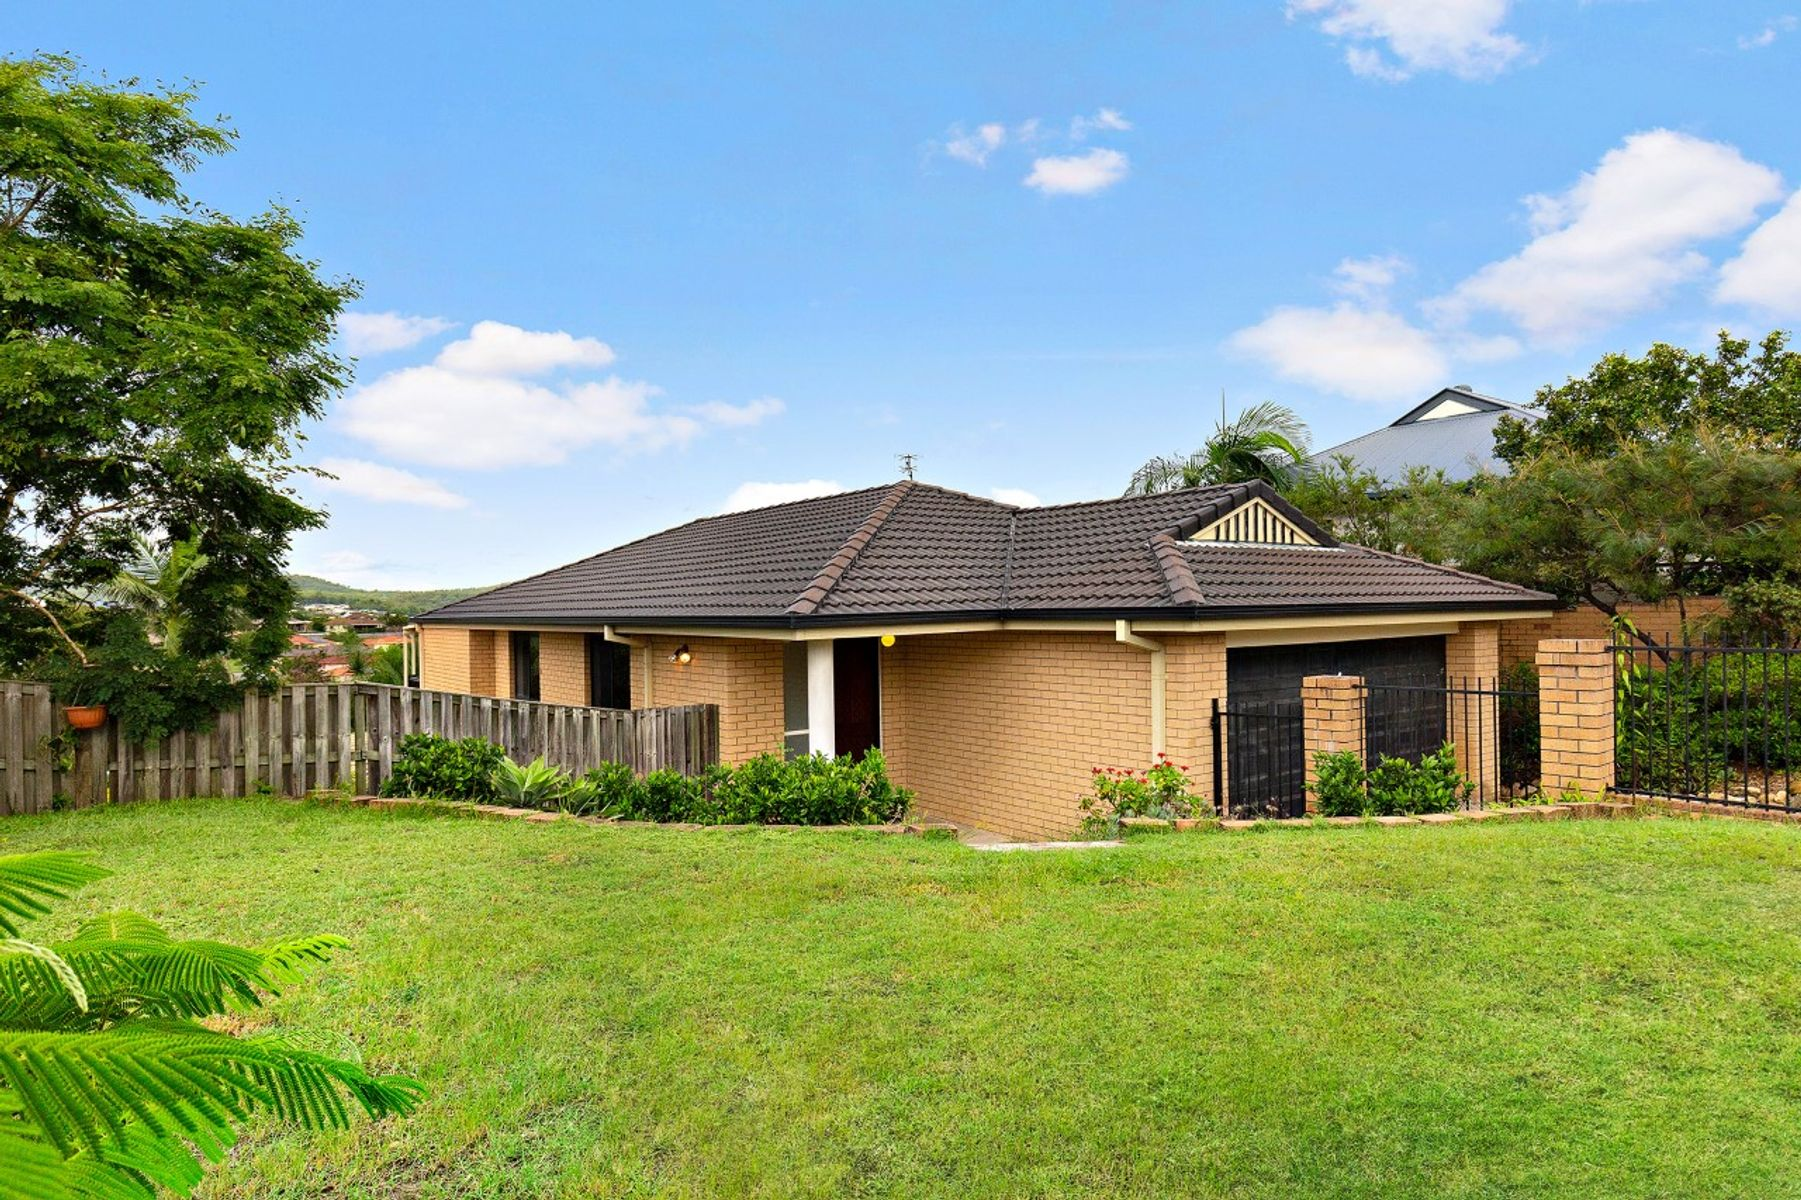 19 Manra Way, Pacific Pines, QLD 4211